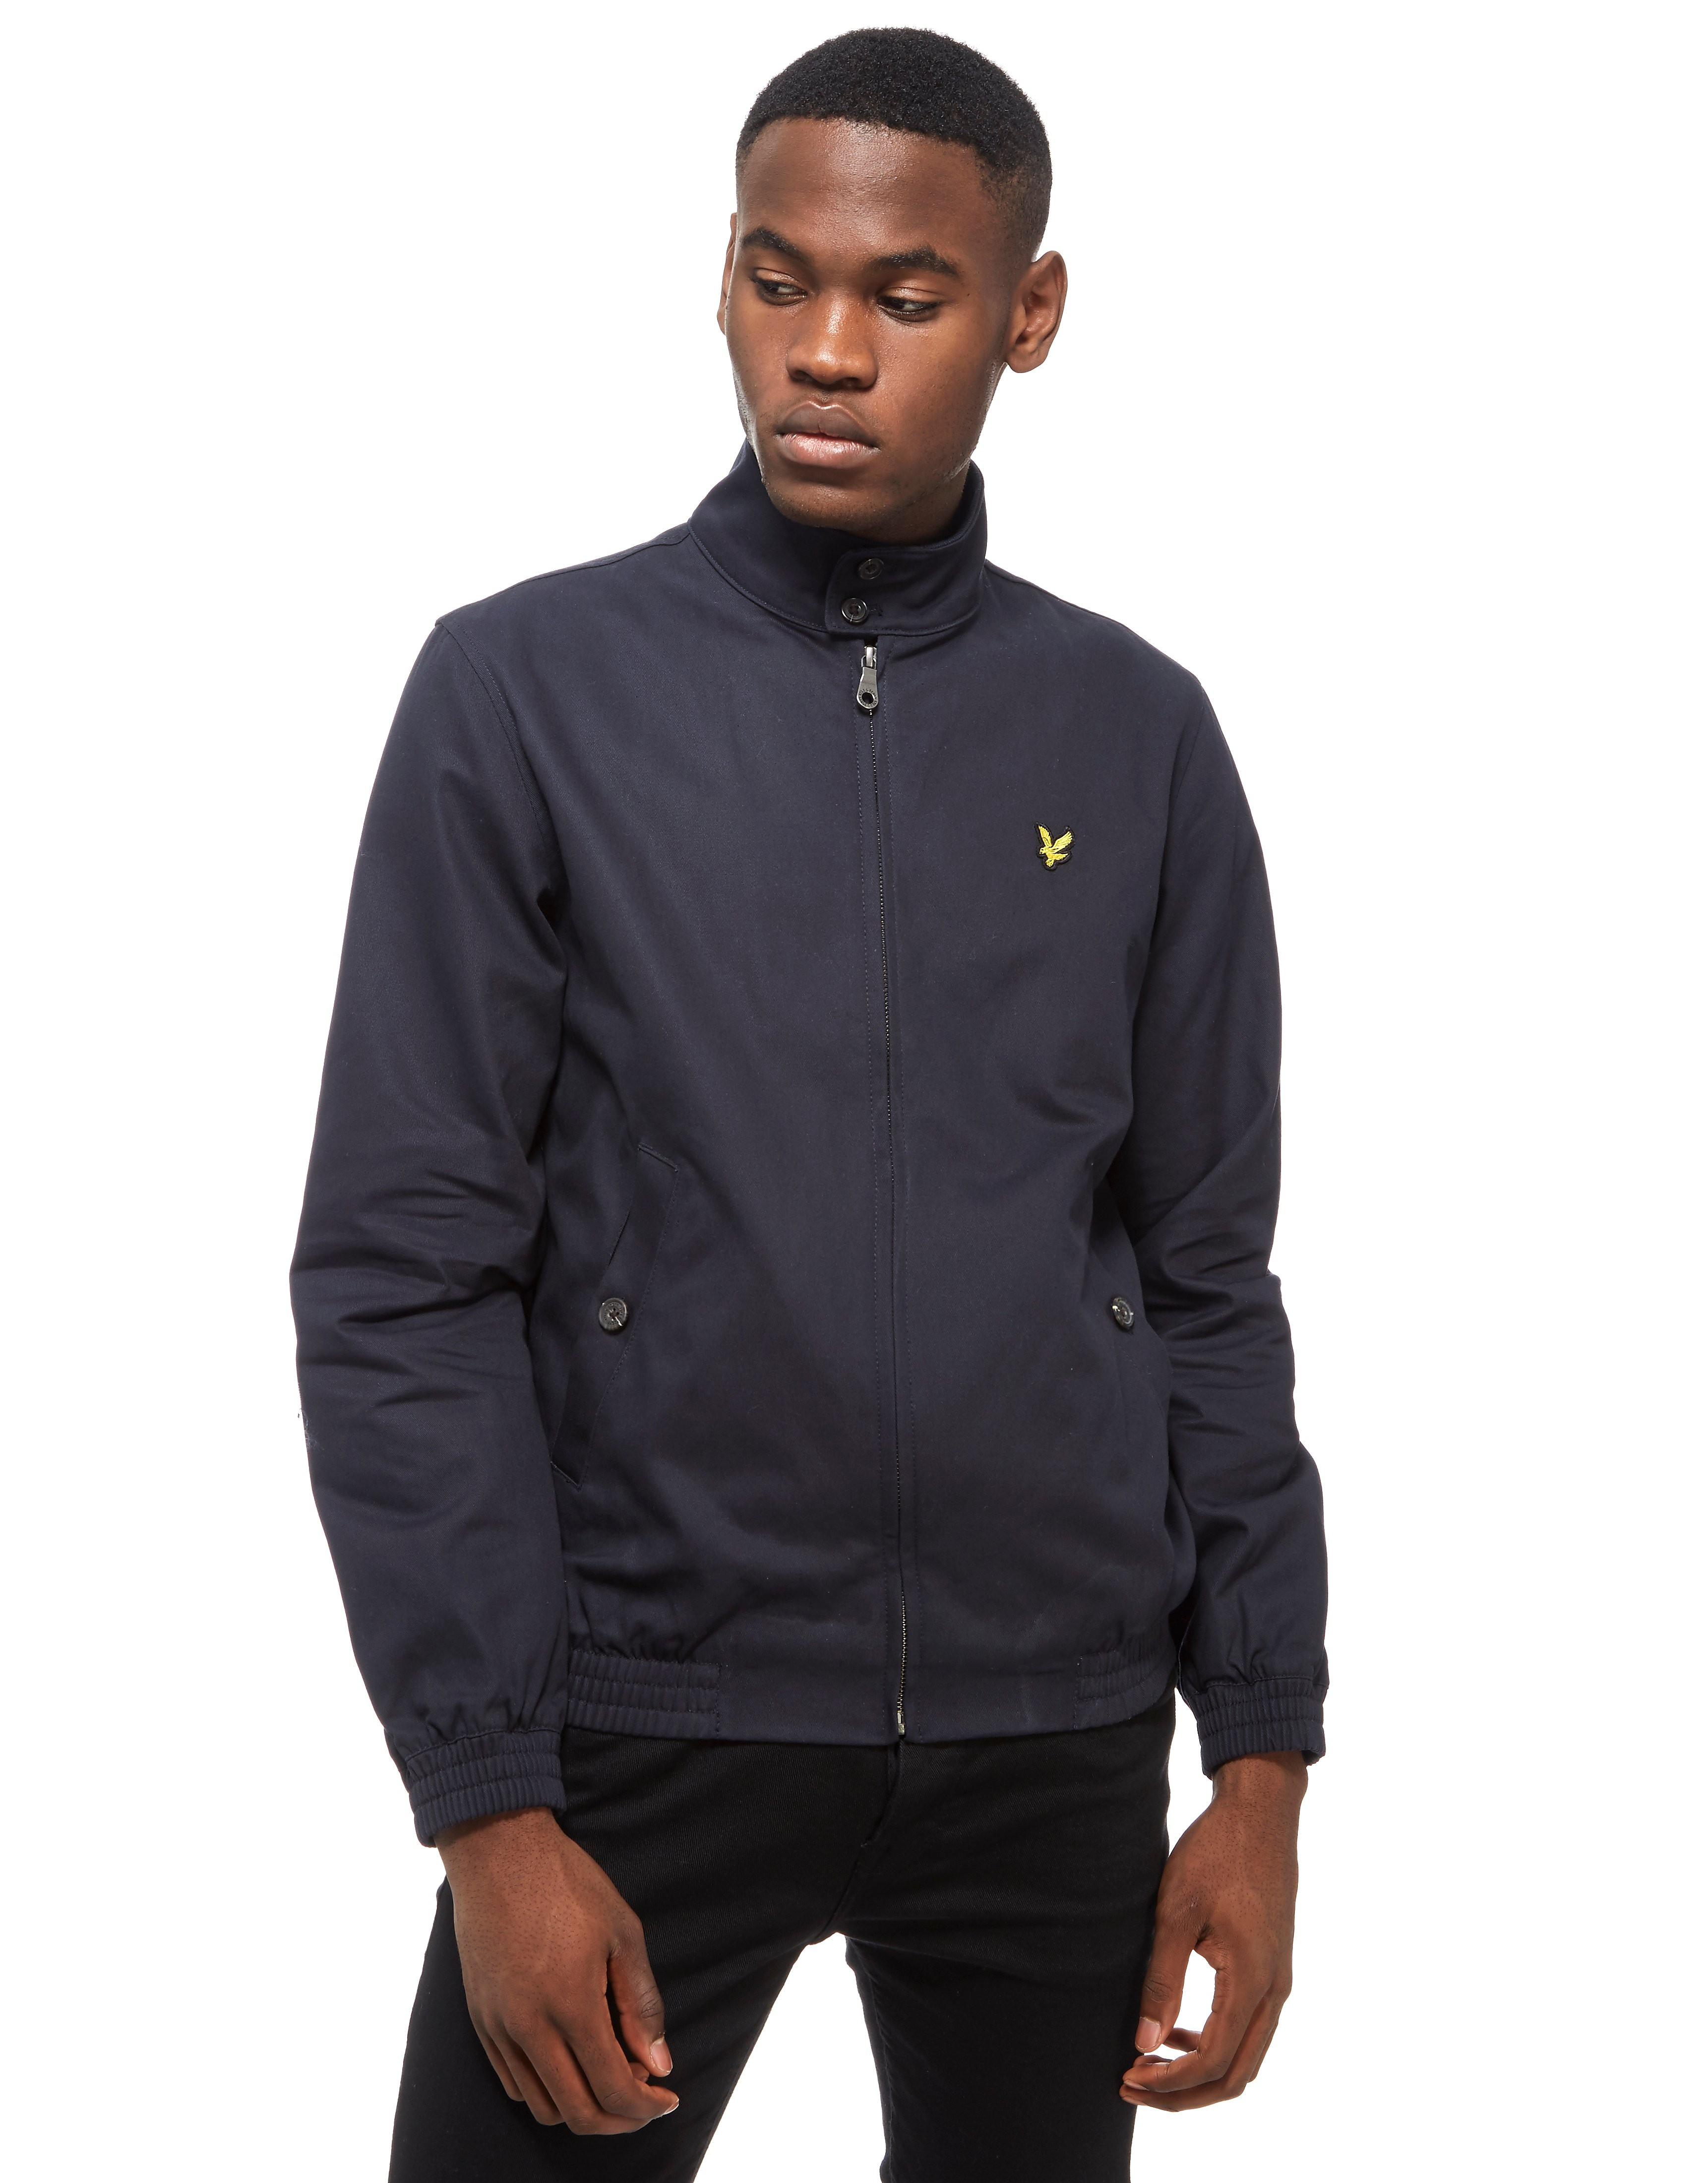 Lyle & Scott Harrington Lightweight Jacket